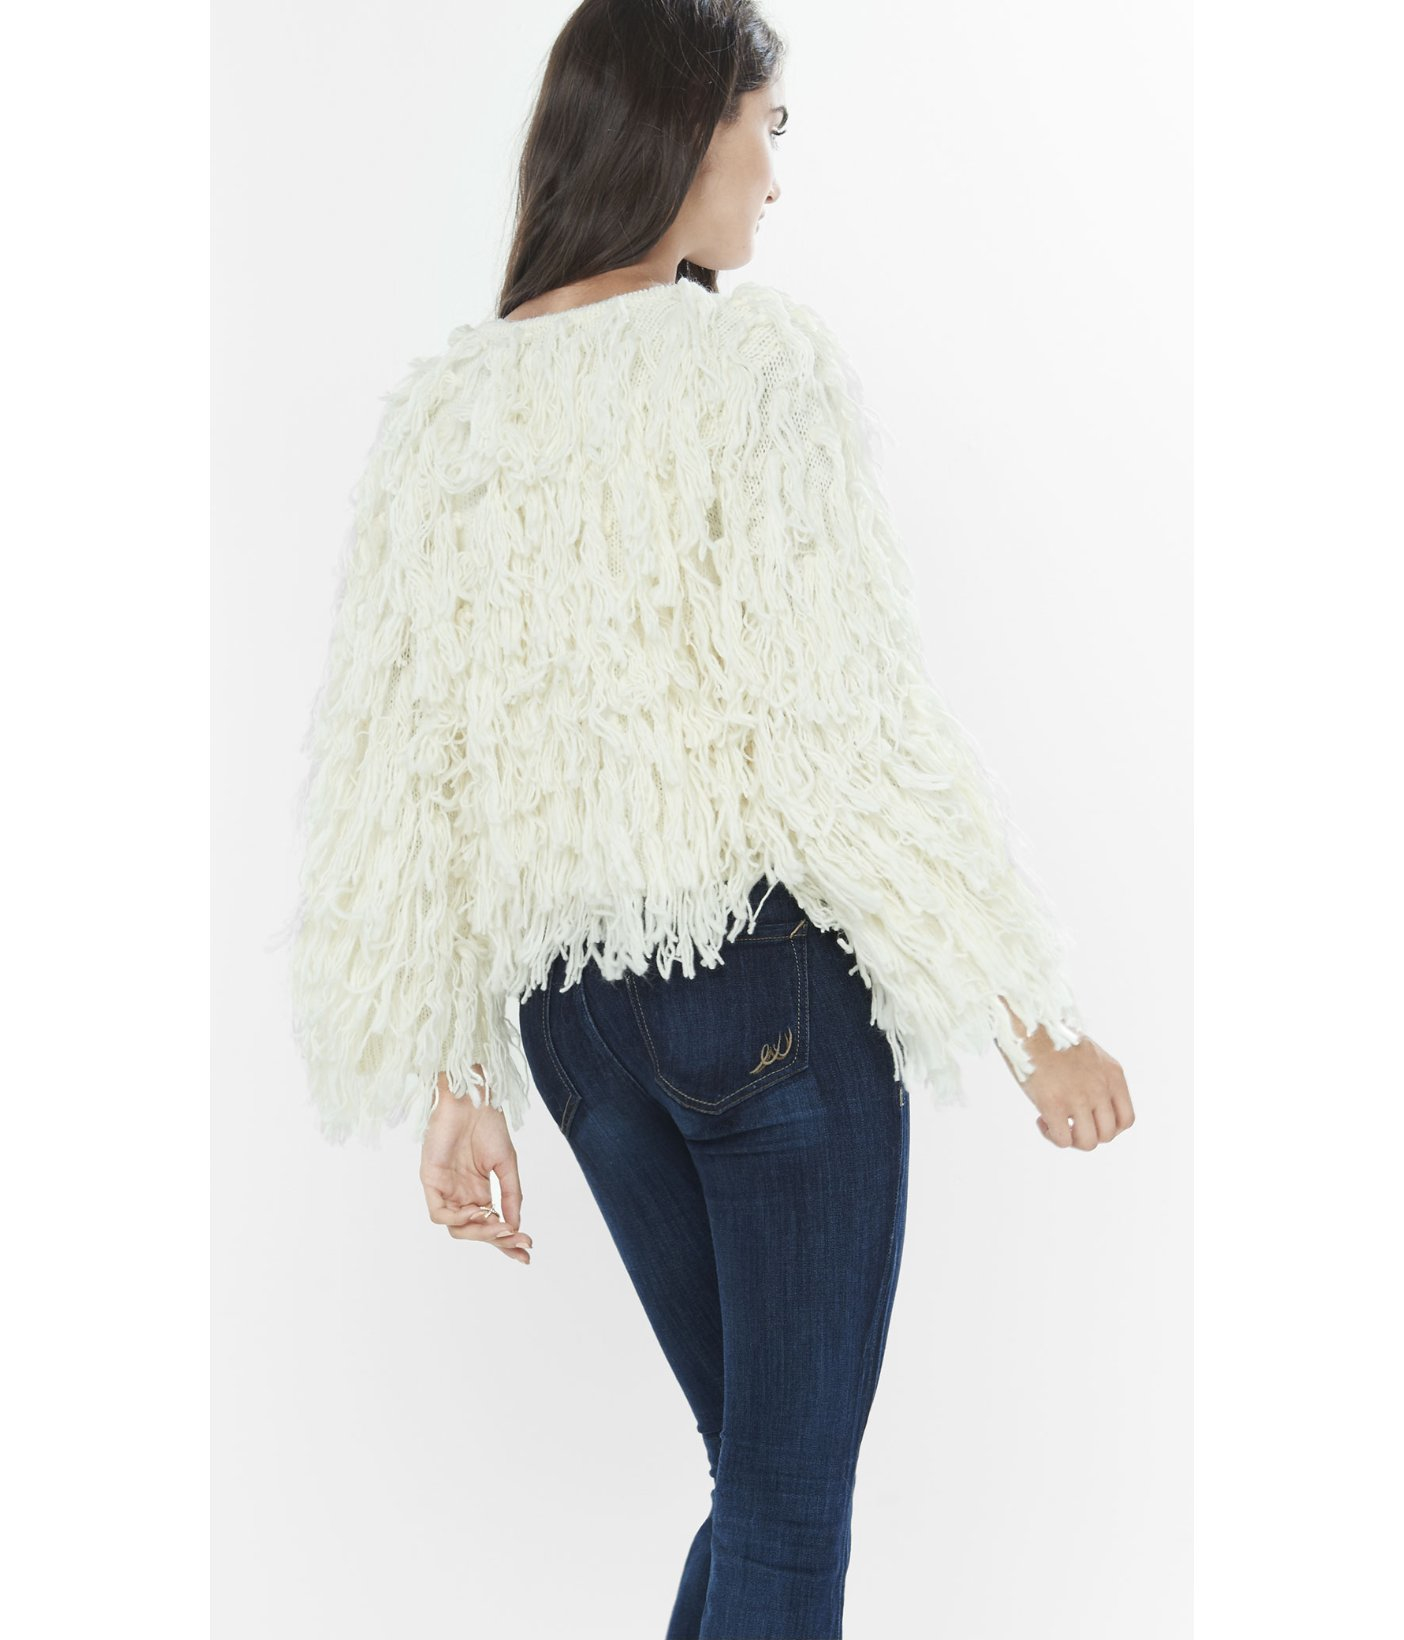 4698b73f1cb2 Lyst - Express Shaggy Sweater Jacket in Natural